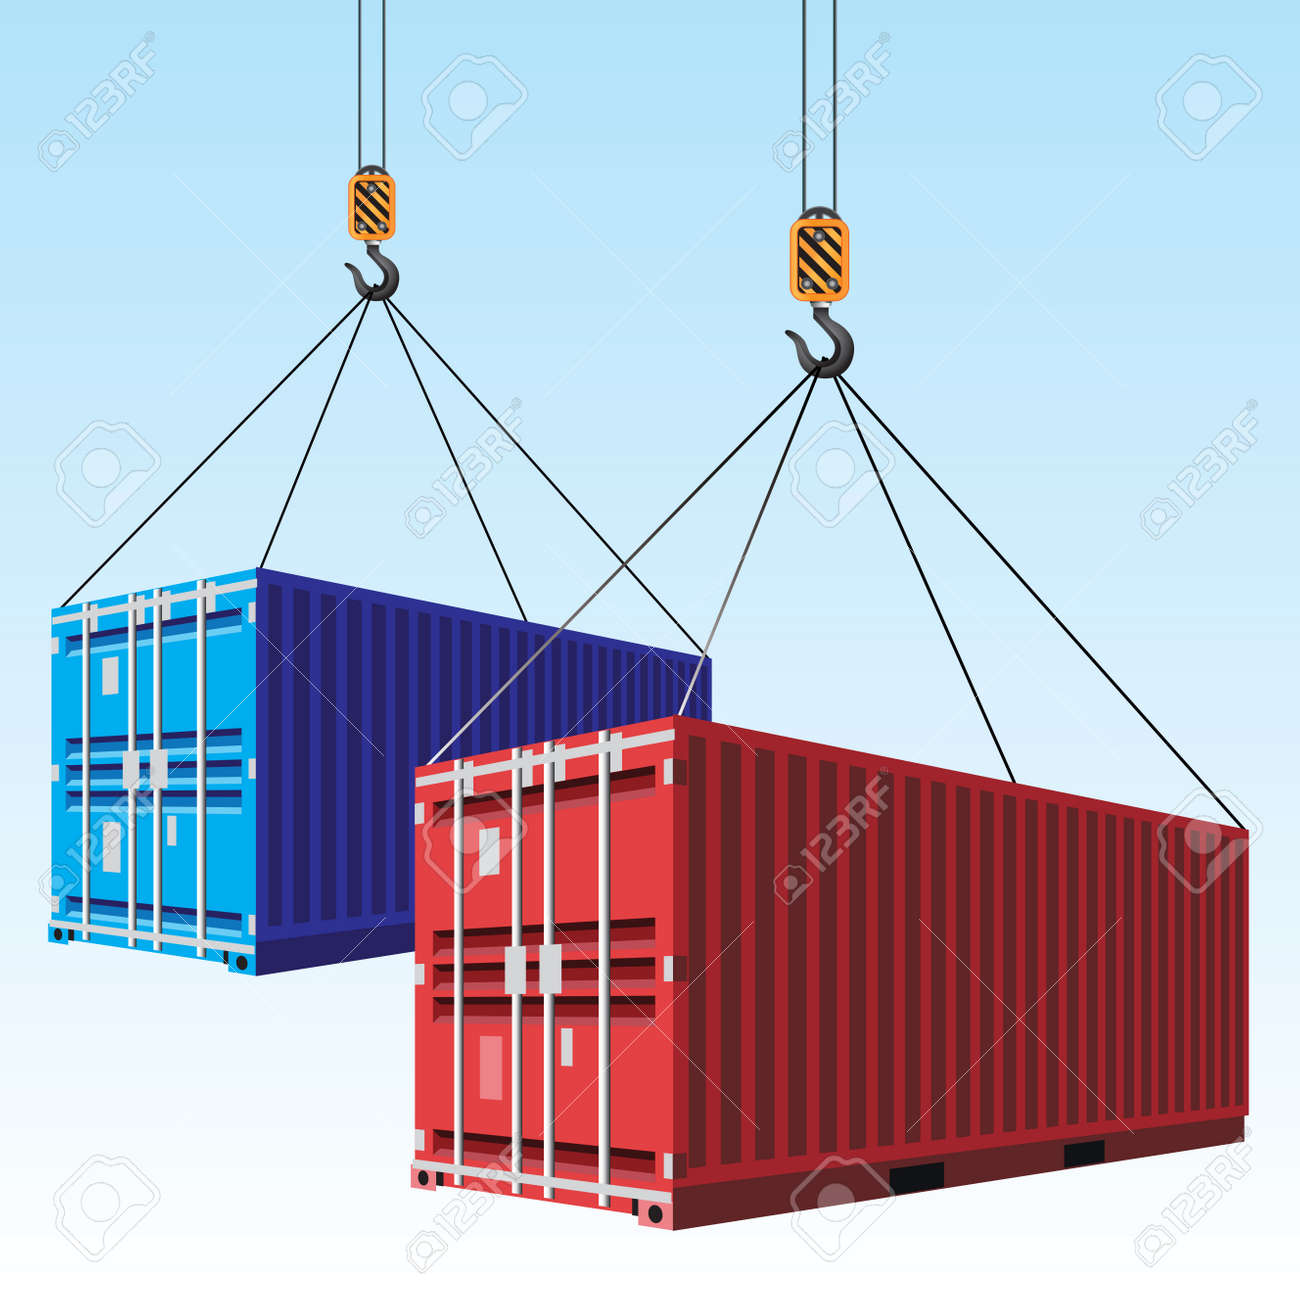 Cargo containers hoisted with hooks. Vector illustration - 50268859